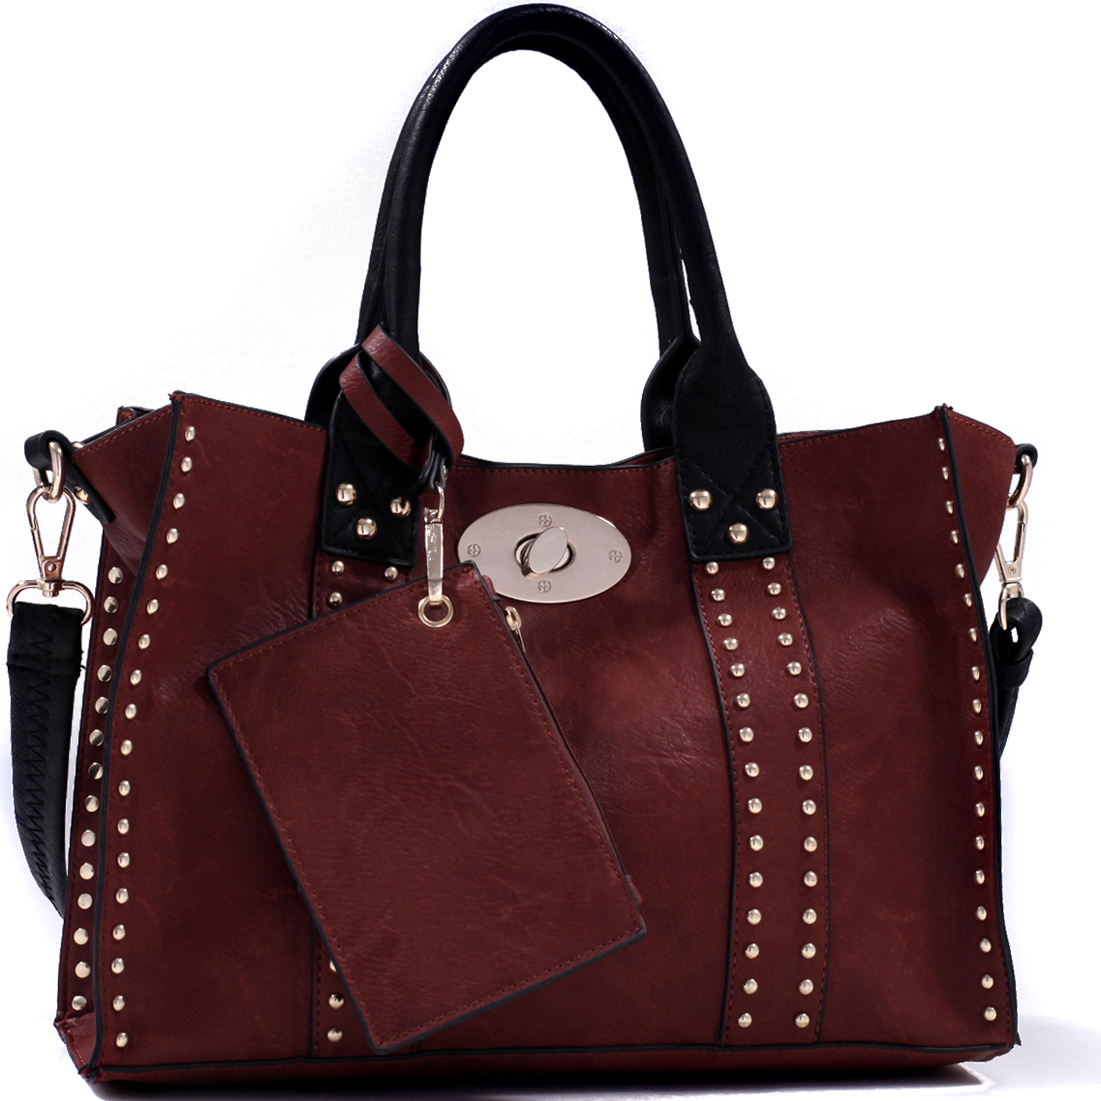 Studded 3 in 1 Twist Lock Tote Bag w/Cross Body bag and Change Purse